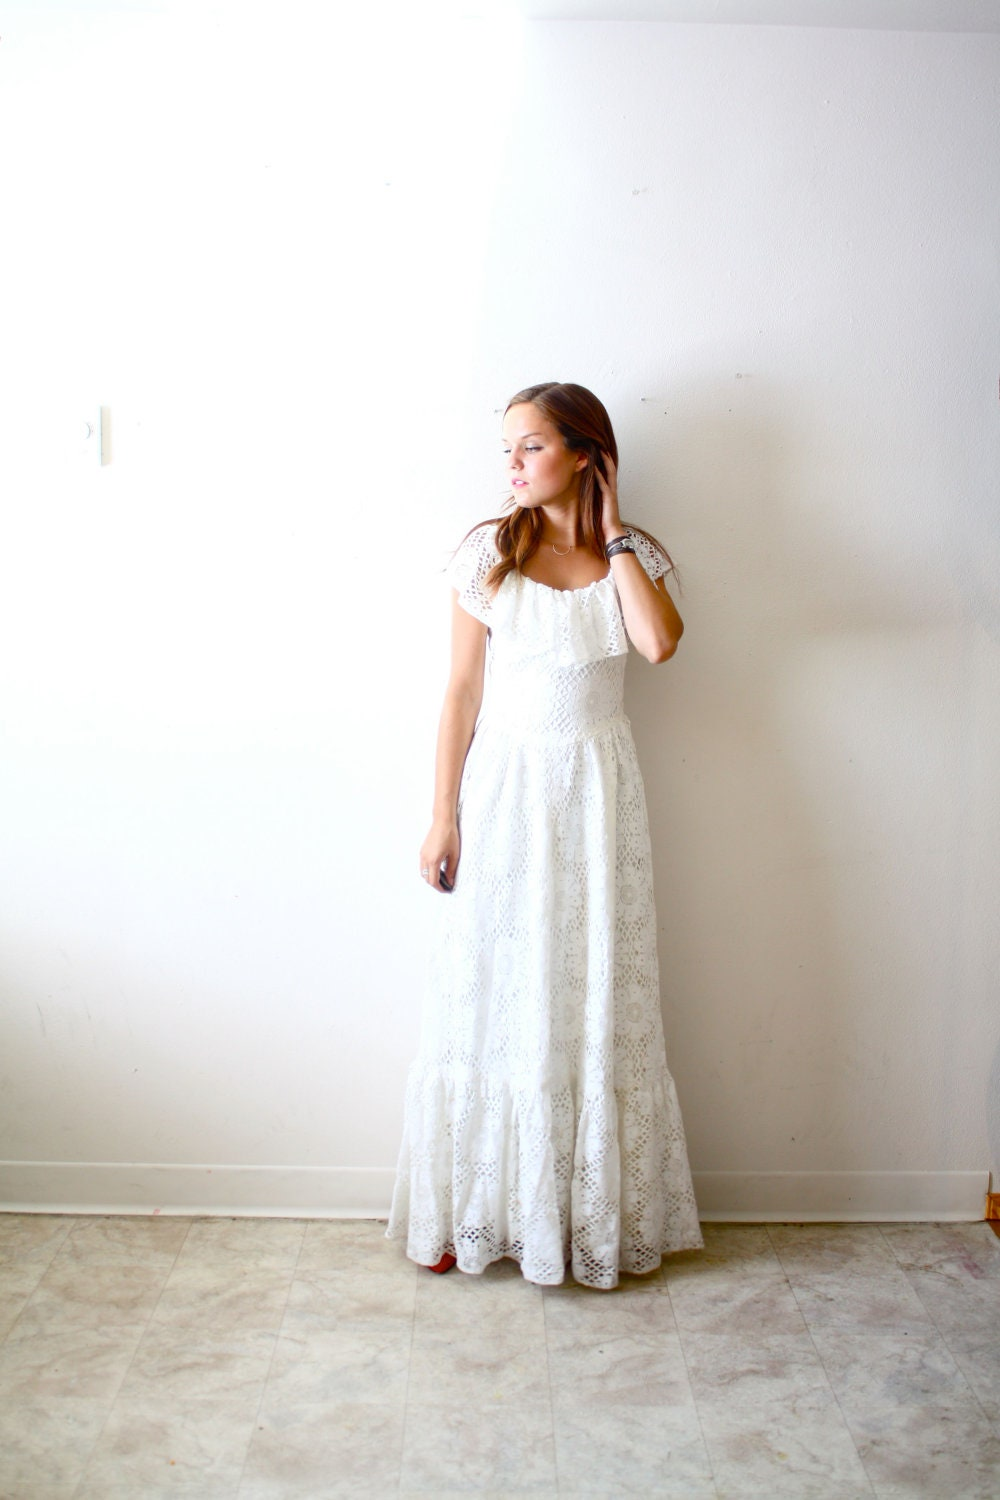 Vintage Chic Wedding Dress : Vintage wedding dress shabby chic boho all lace floral a line fit